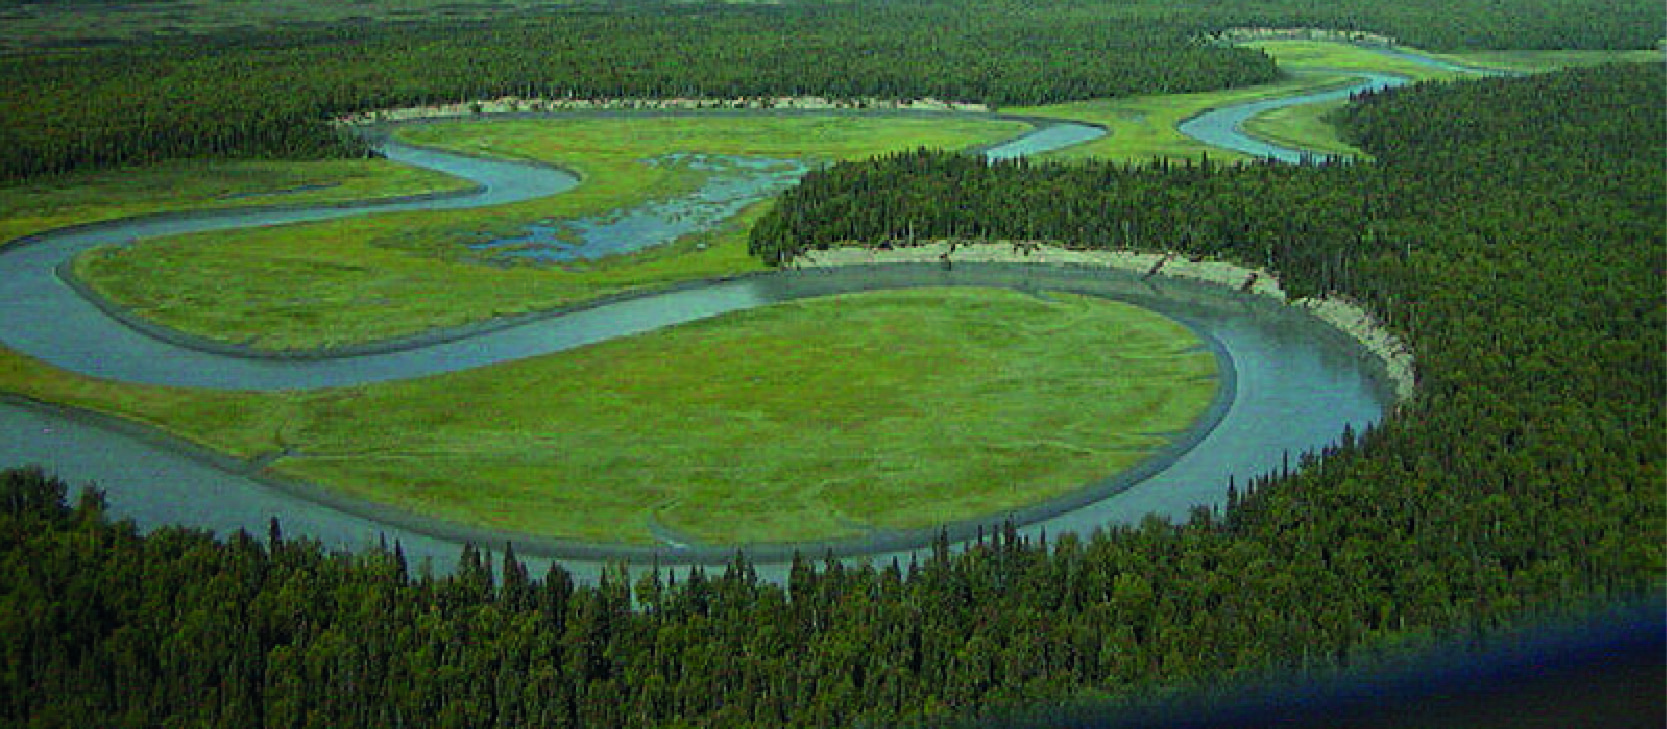 """<span style=\""""font-size: 12pt;\"""">Meandering rivers</span>"""